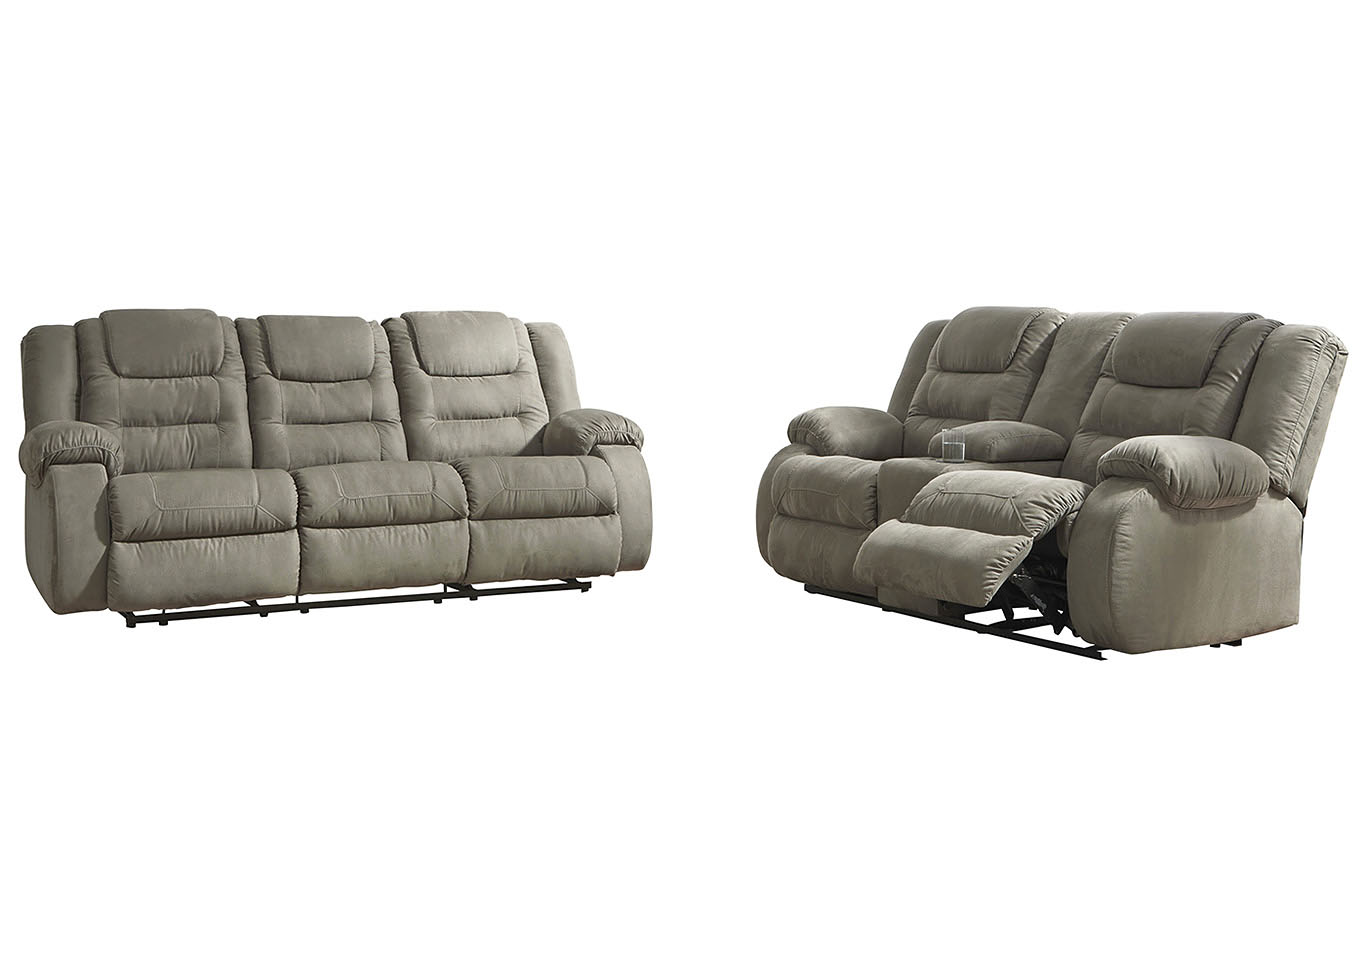 McCade Cobblestone Reclining Sofa & Loveseat w/Console,Signature Design By Ashley